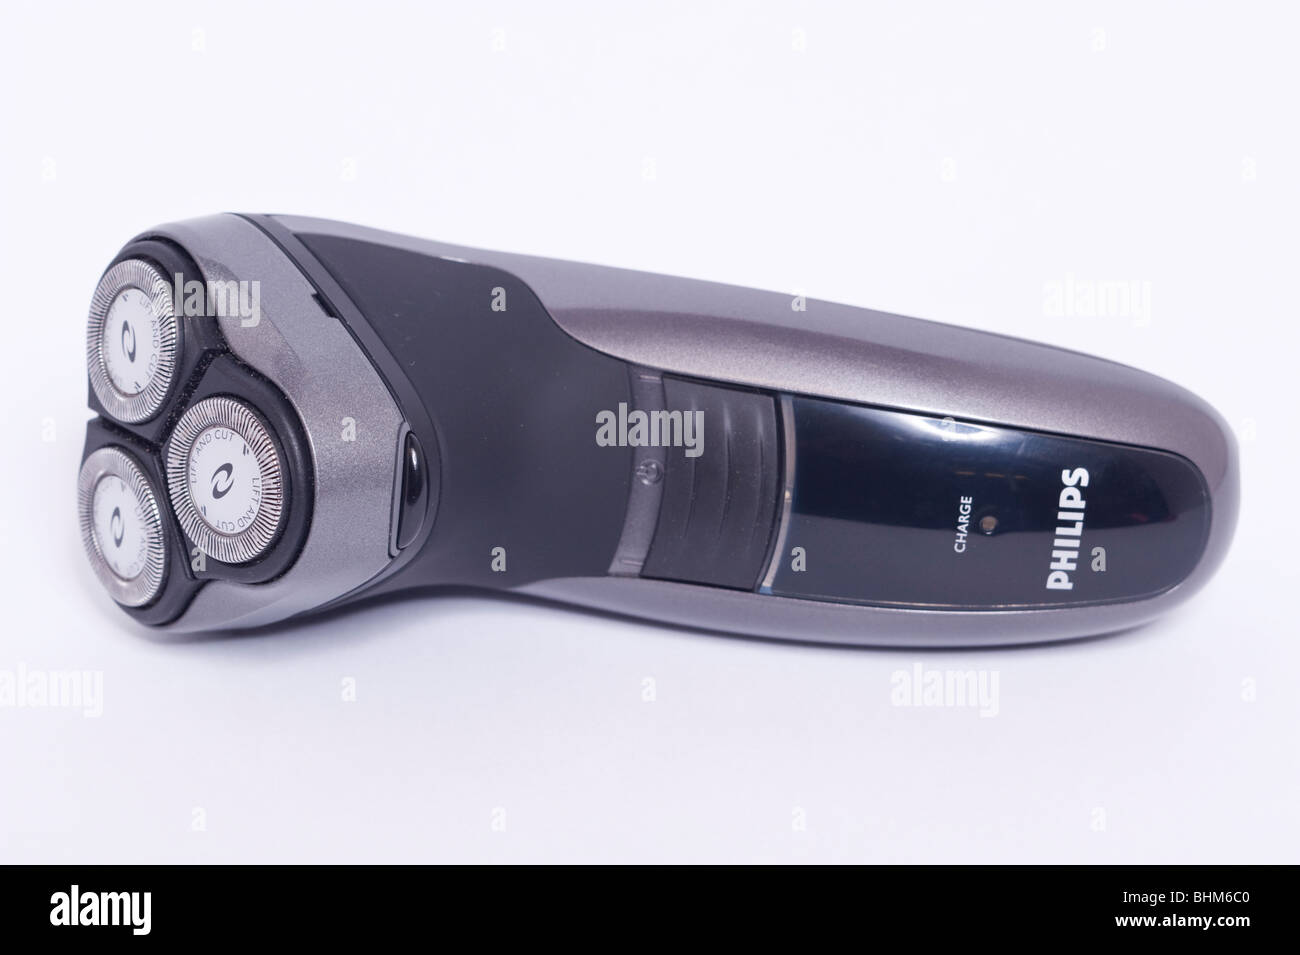 A Philips philishave electric shaver razor on a white background - Stock Image